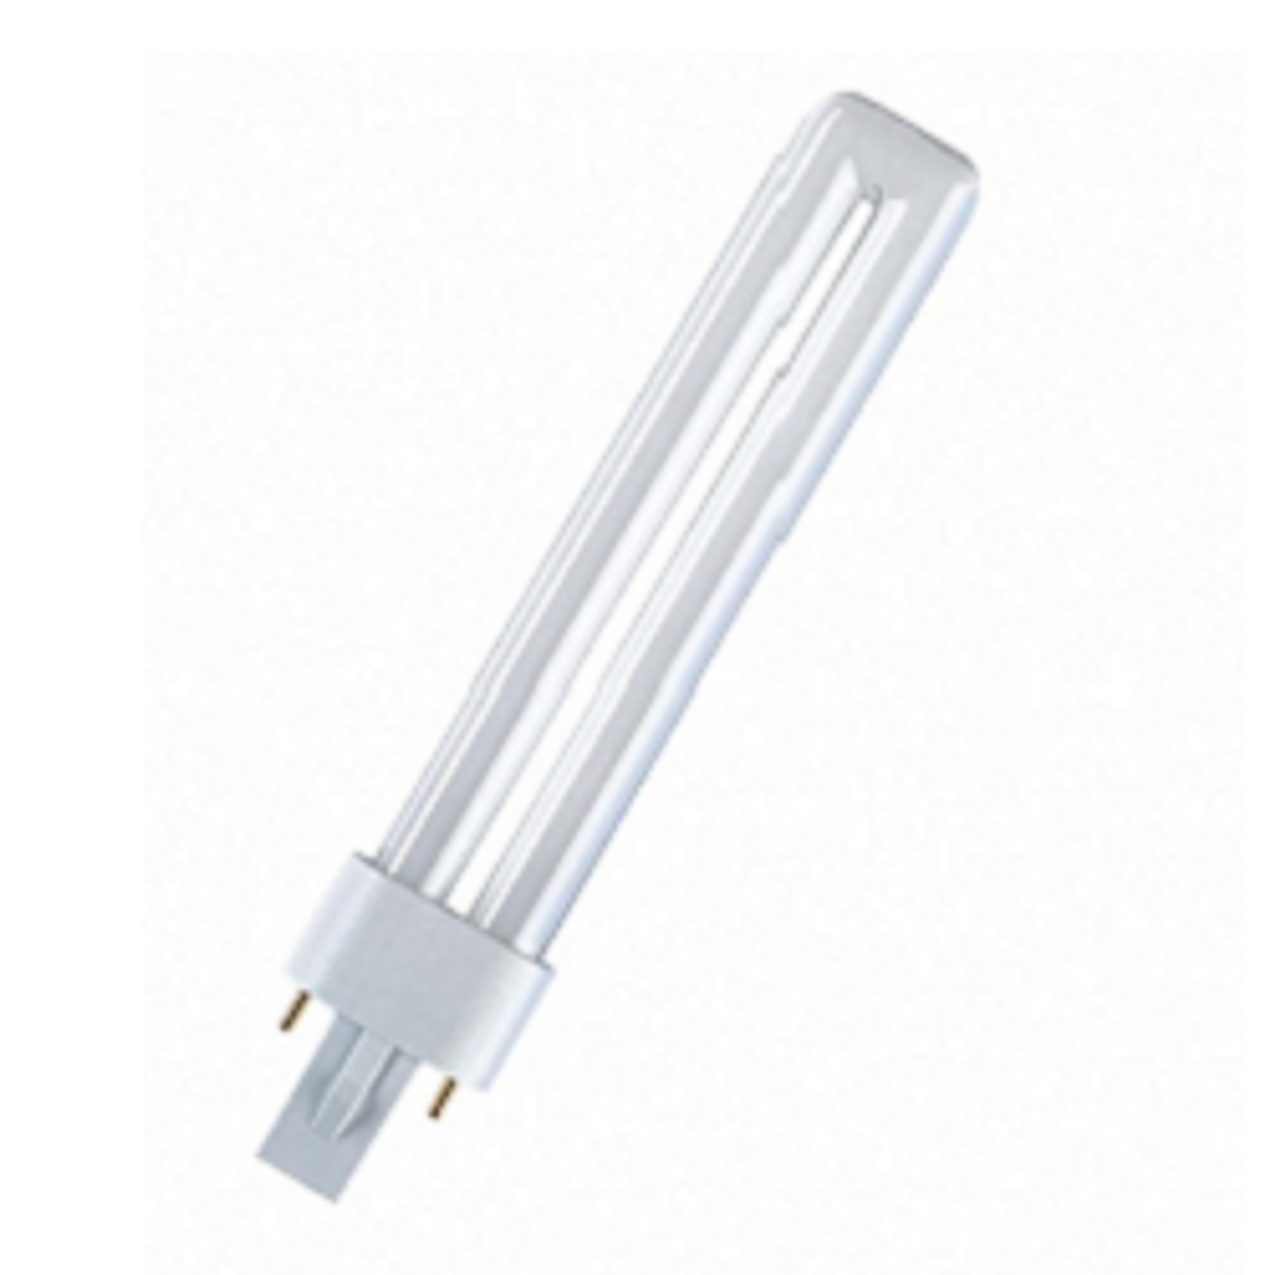 Replacement for Light Bulb//Lamp Cf9ds-blue Light Bulb This Bulb is Not Manufactured by Light Bulb//Lamp